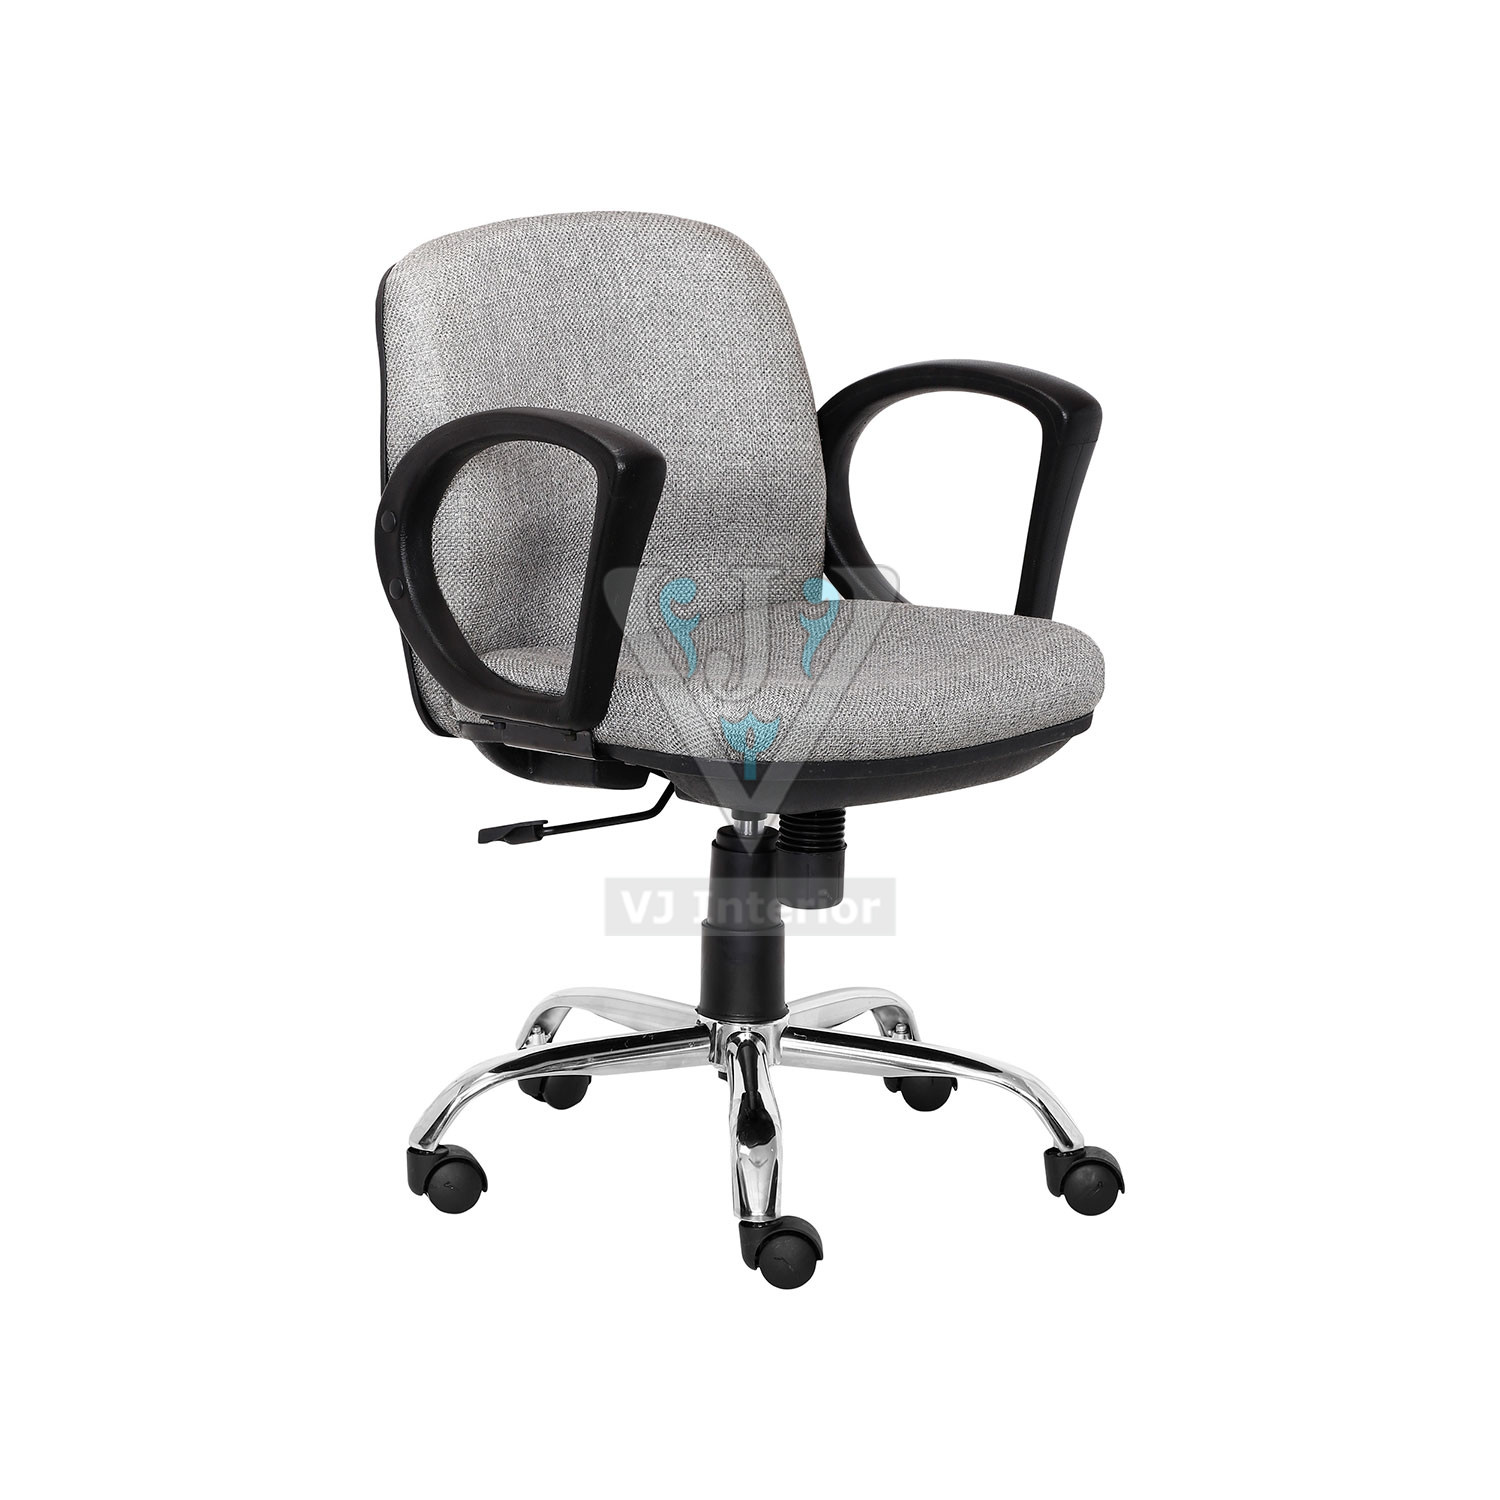 Pleasant Visitor Office Chair In Light Gray Color Theyellowbook Wood Chair Design Ideas Theyellowbookinfo